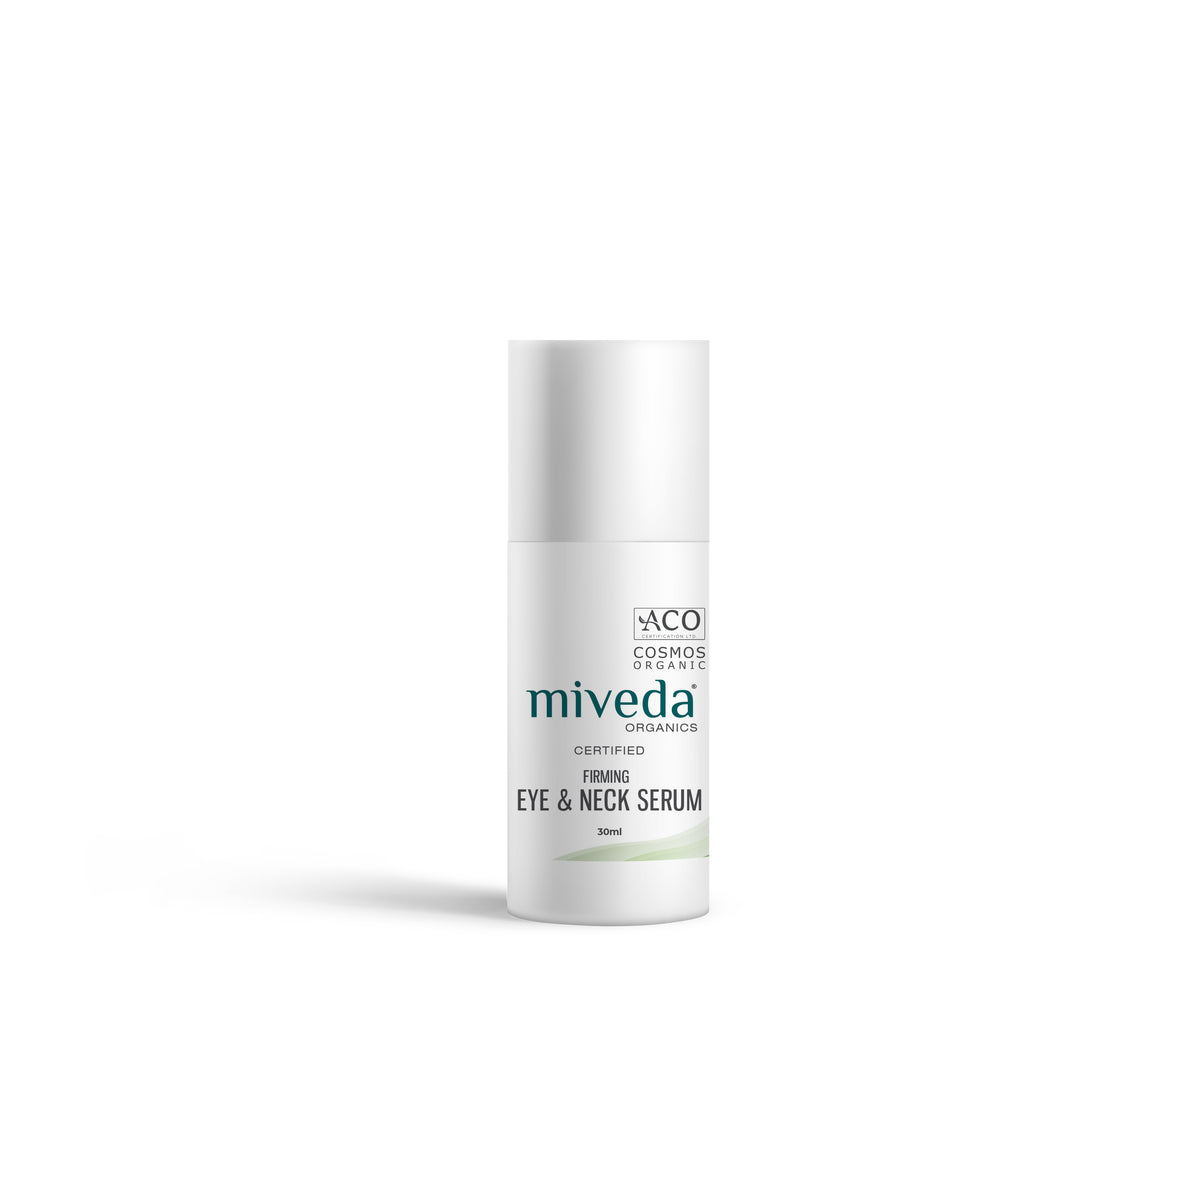 Firming Eye & Neck Serum 30ml